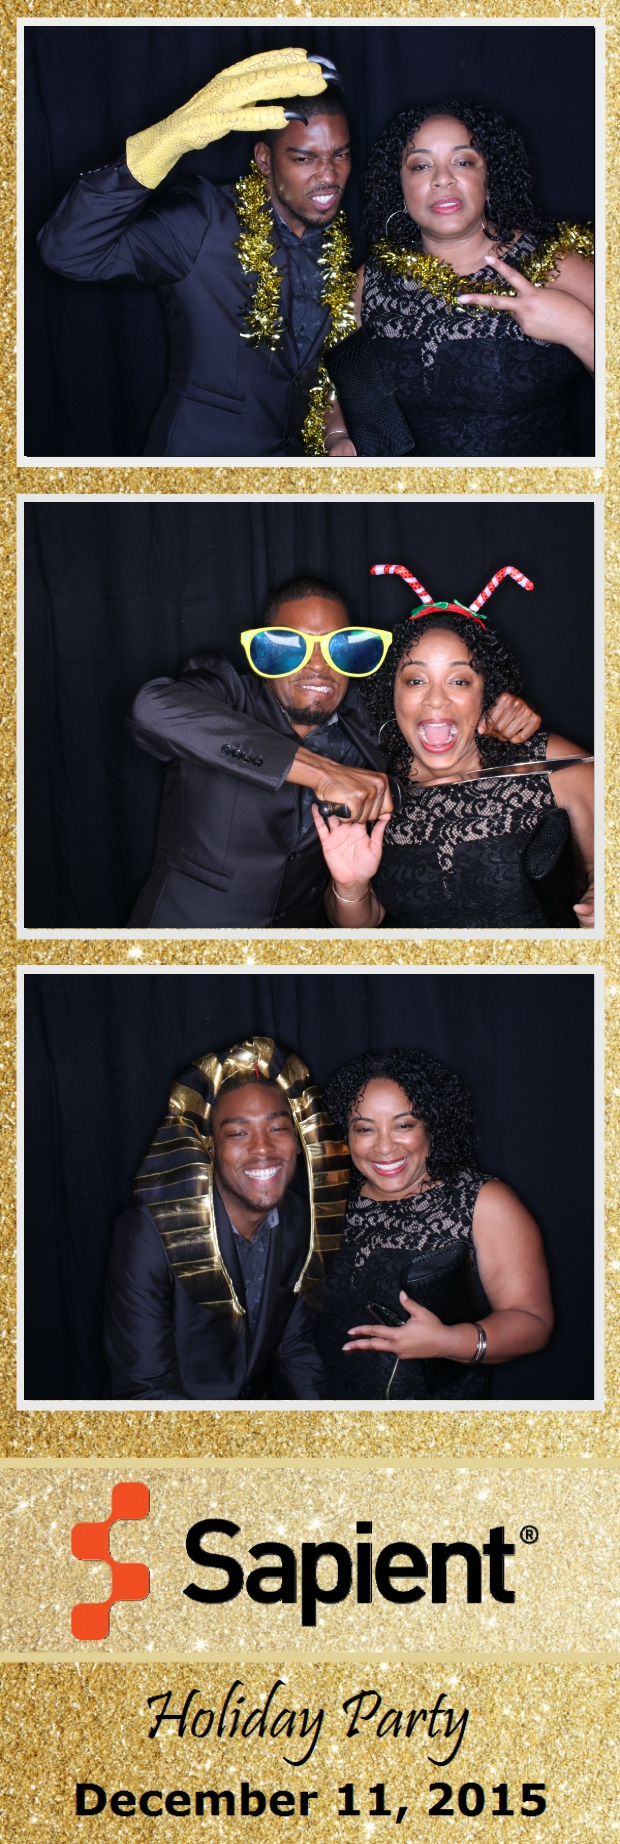 Guest House Events Photo Booth Sapient Holiday Party (6).jpg